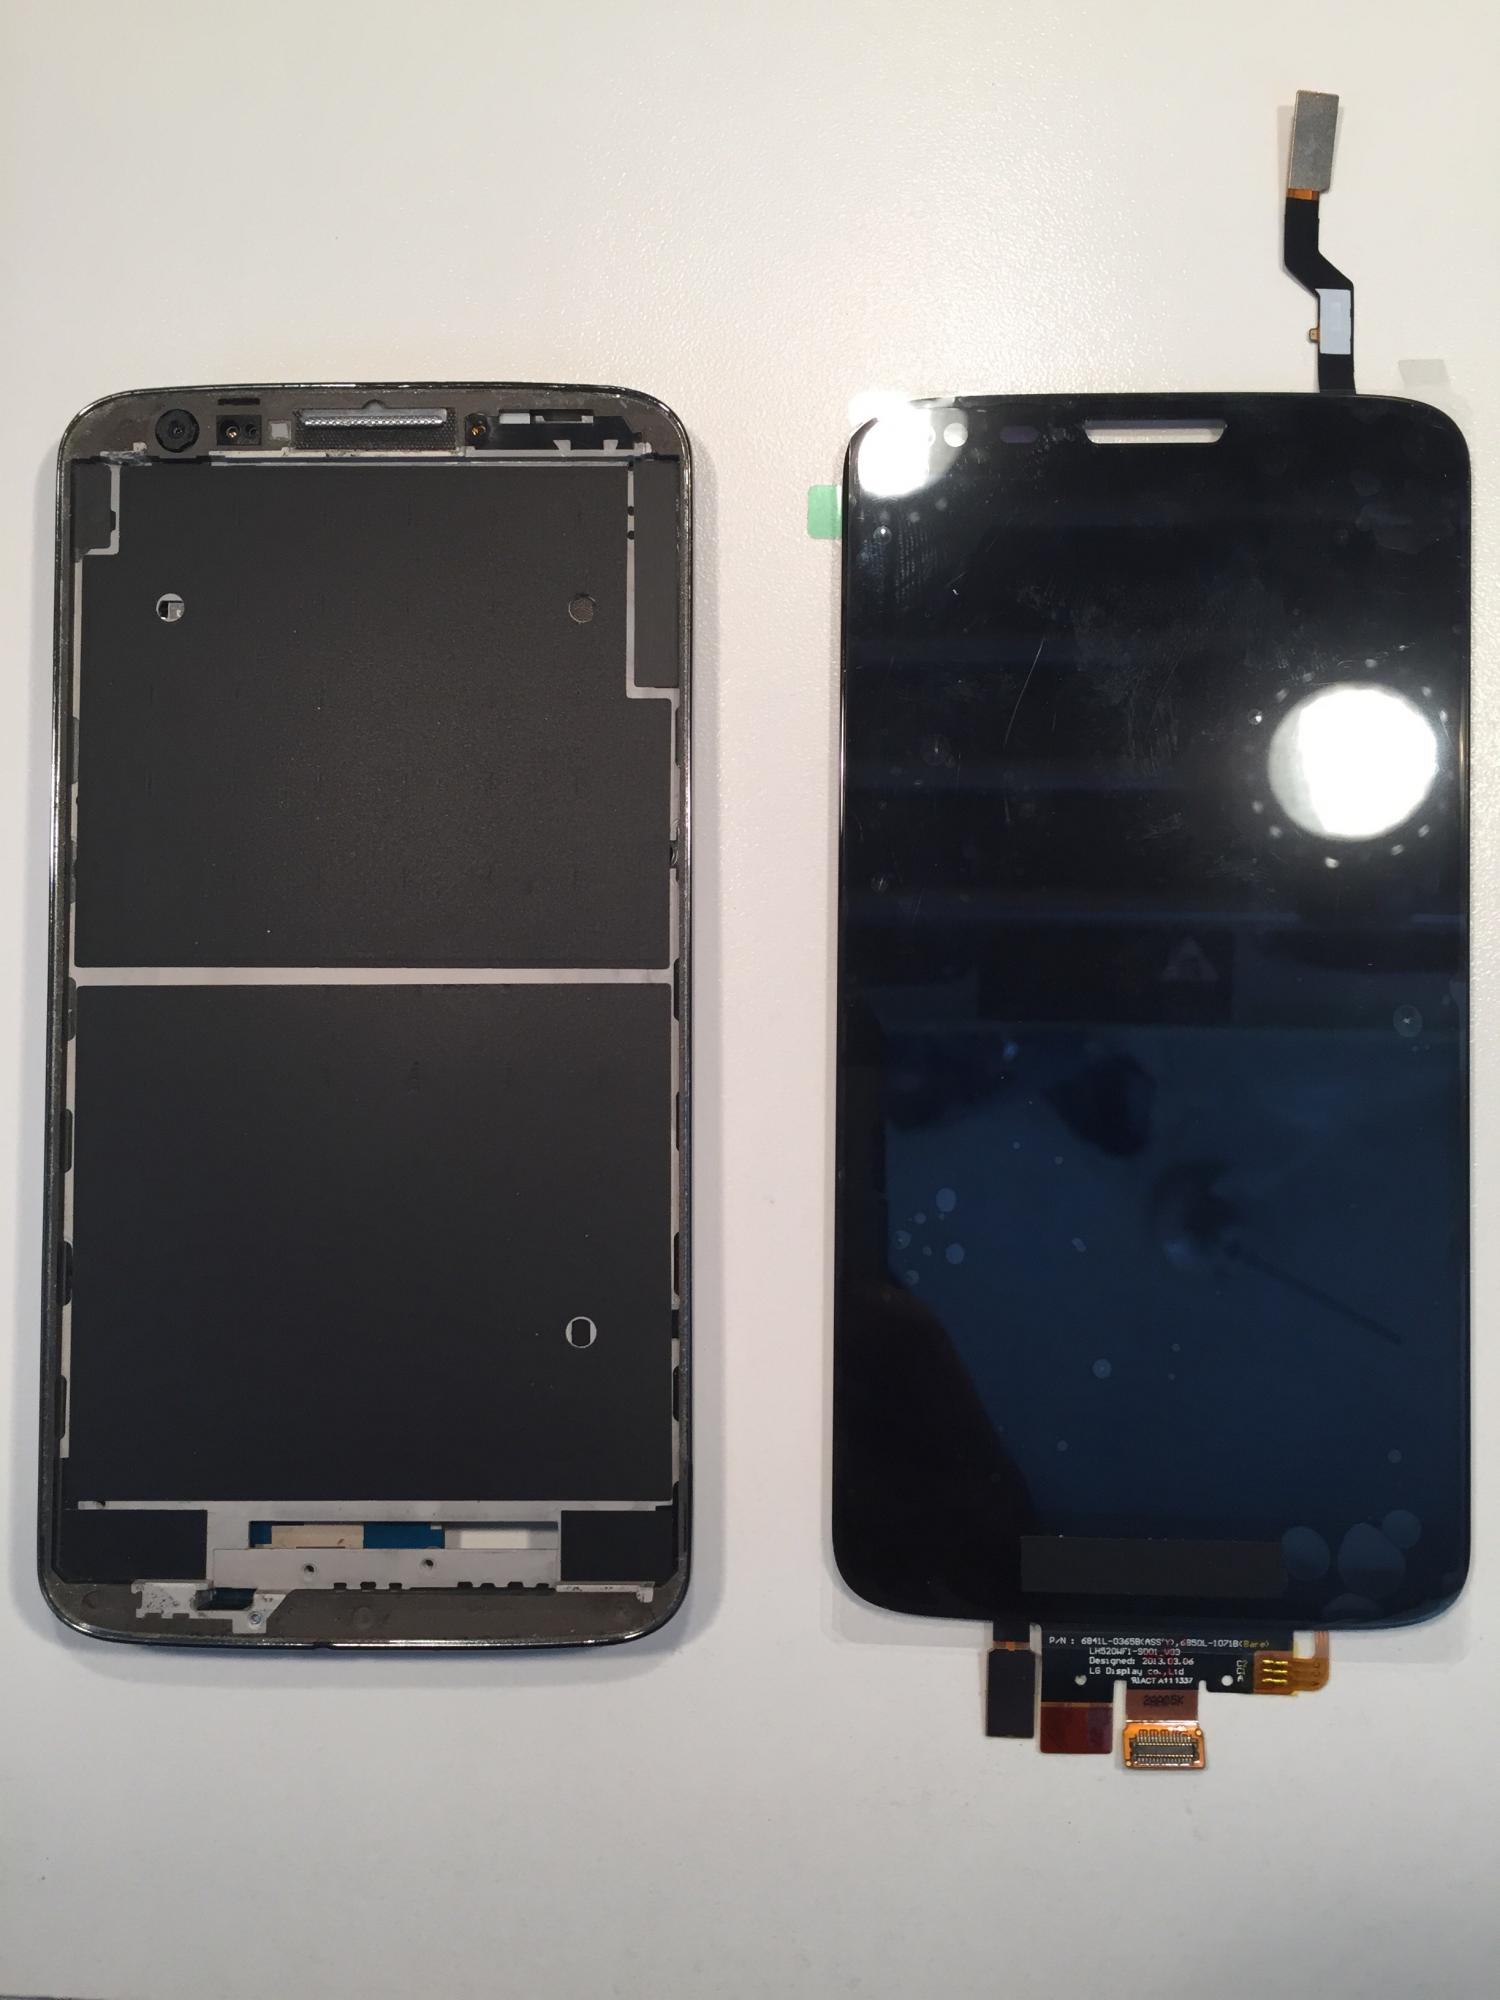 LG Phone LCD Replacement